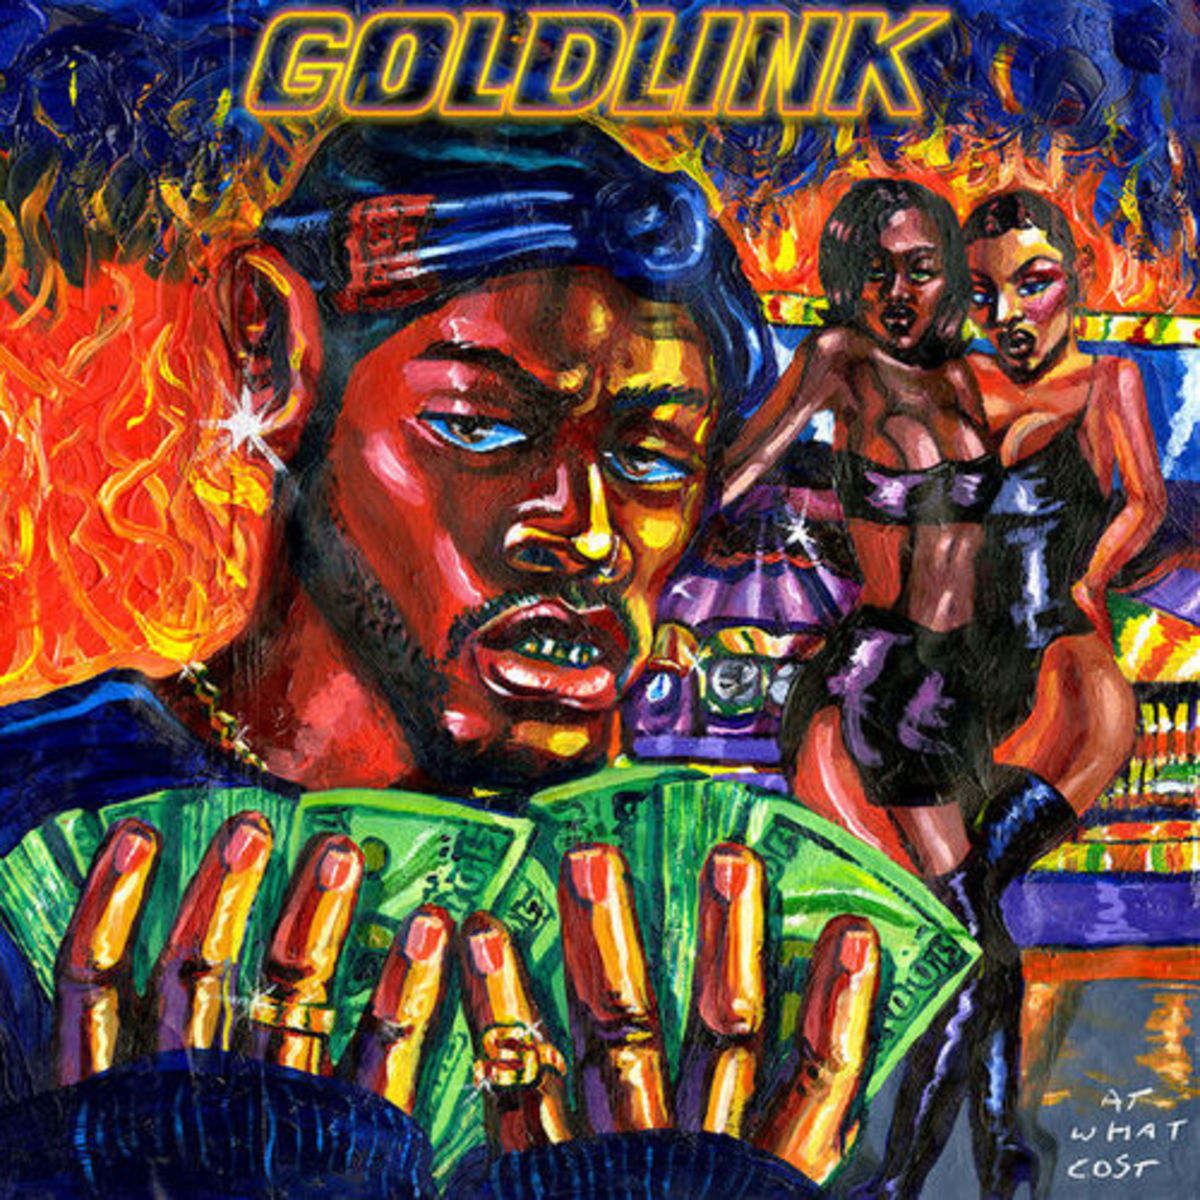 goldlink-at-what-cost.jpg